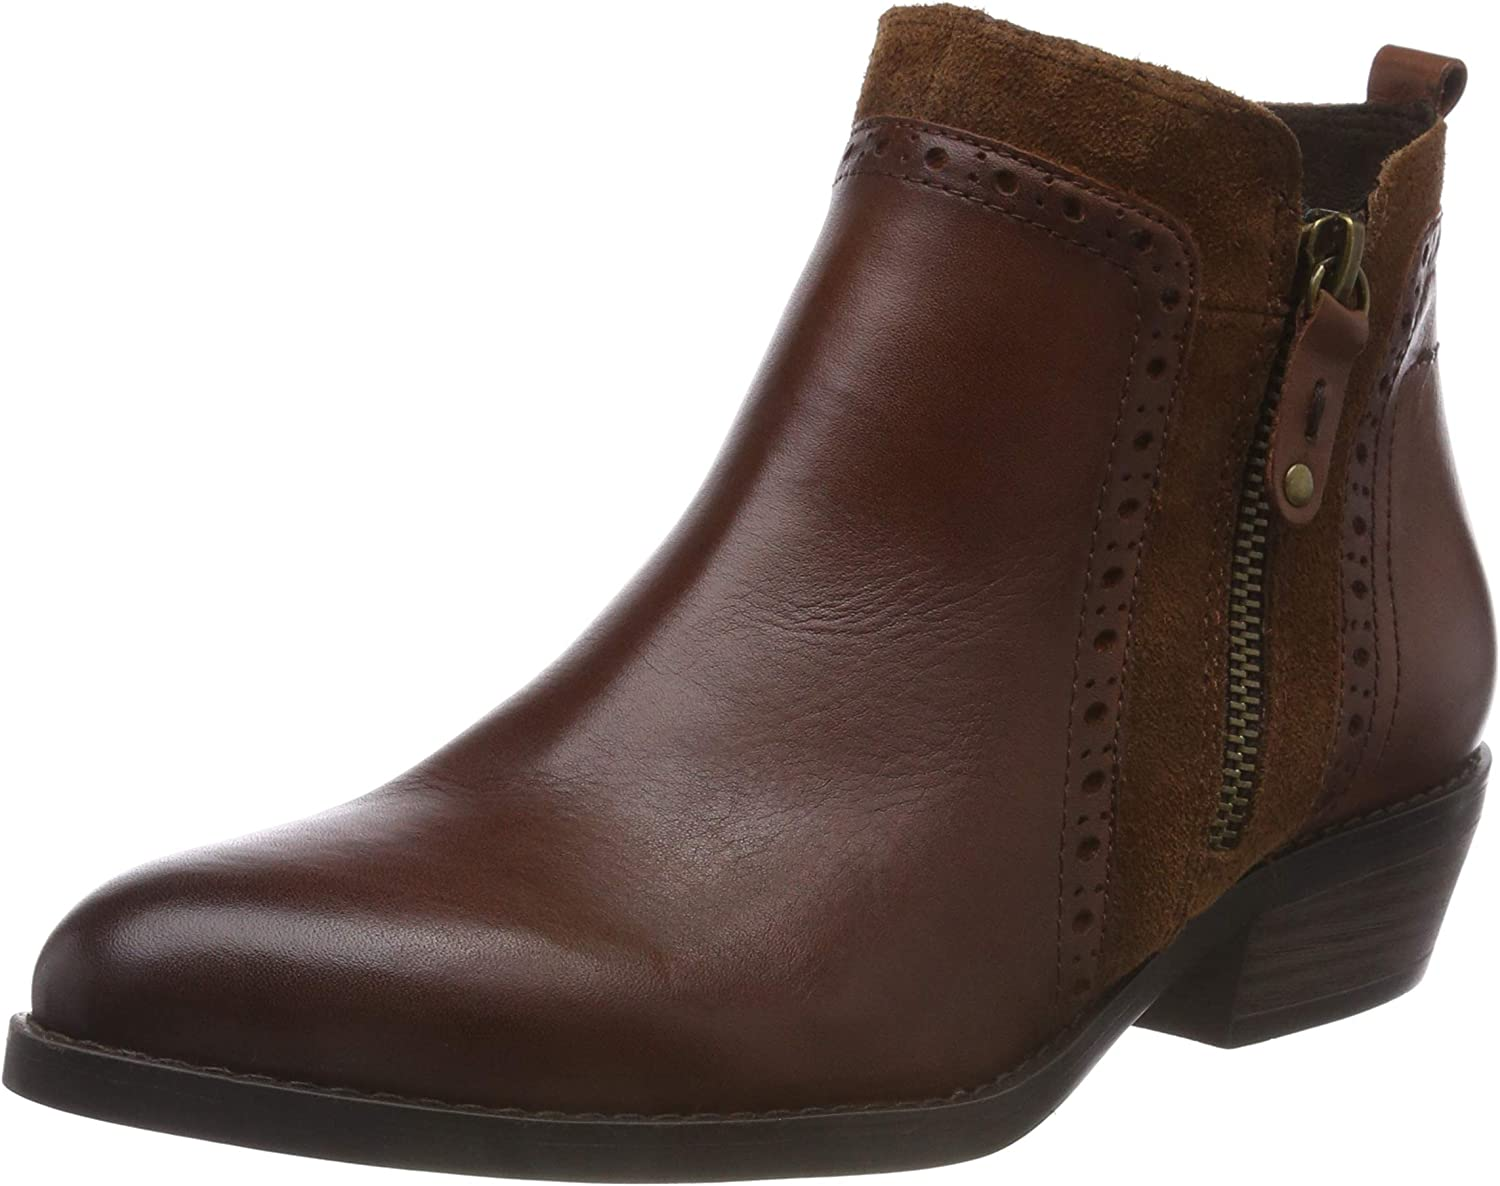 Marco Tozzi Women's Cognac Brown Leather Low Heel Ankle Boot